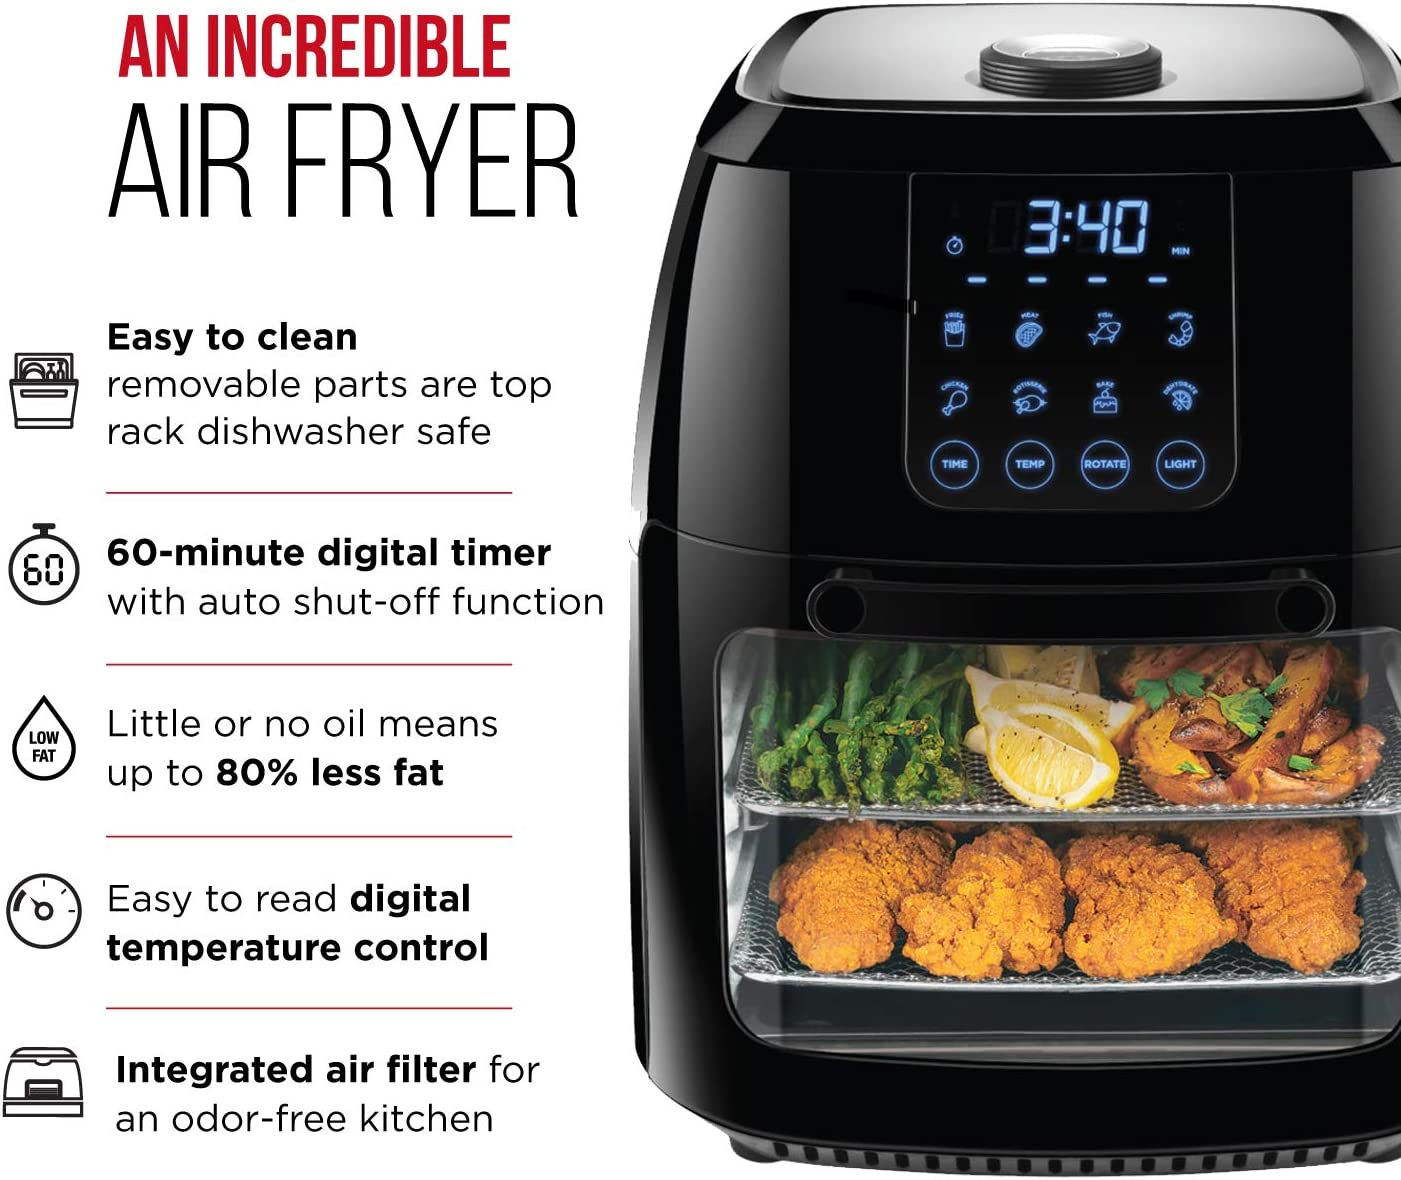 1. Chefman 6.3 QTAir Fryer